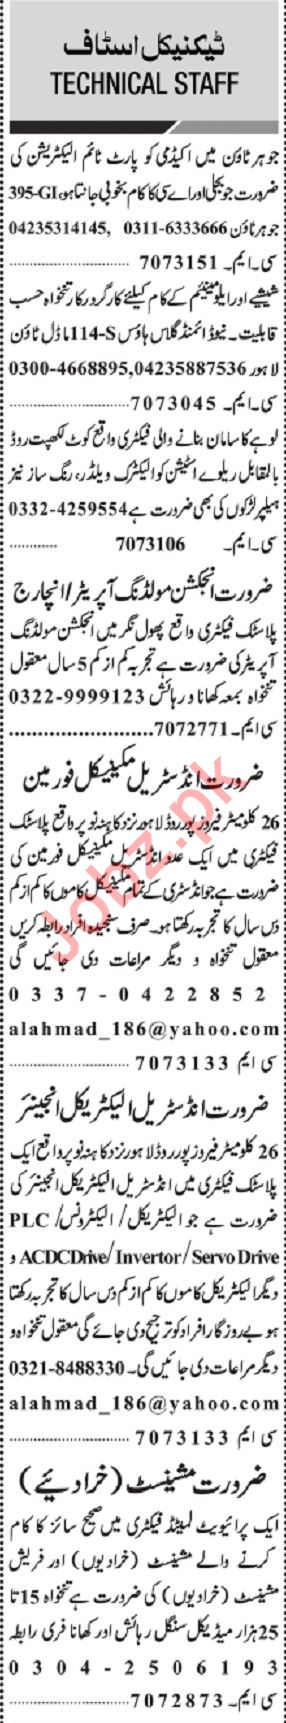 Jang Sunday Classified Ads 13 Oct 2019 for Technical Staff